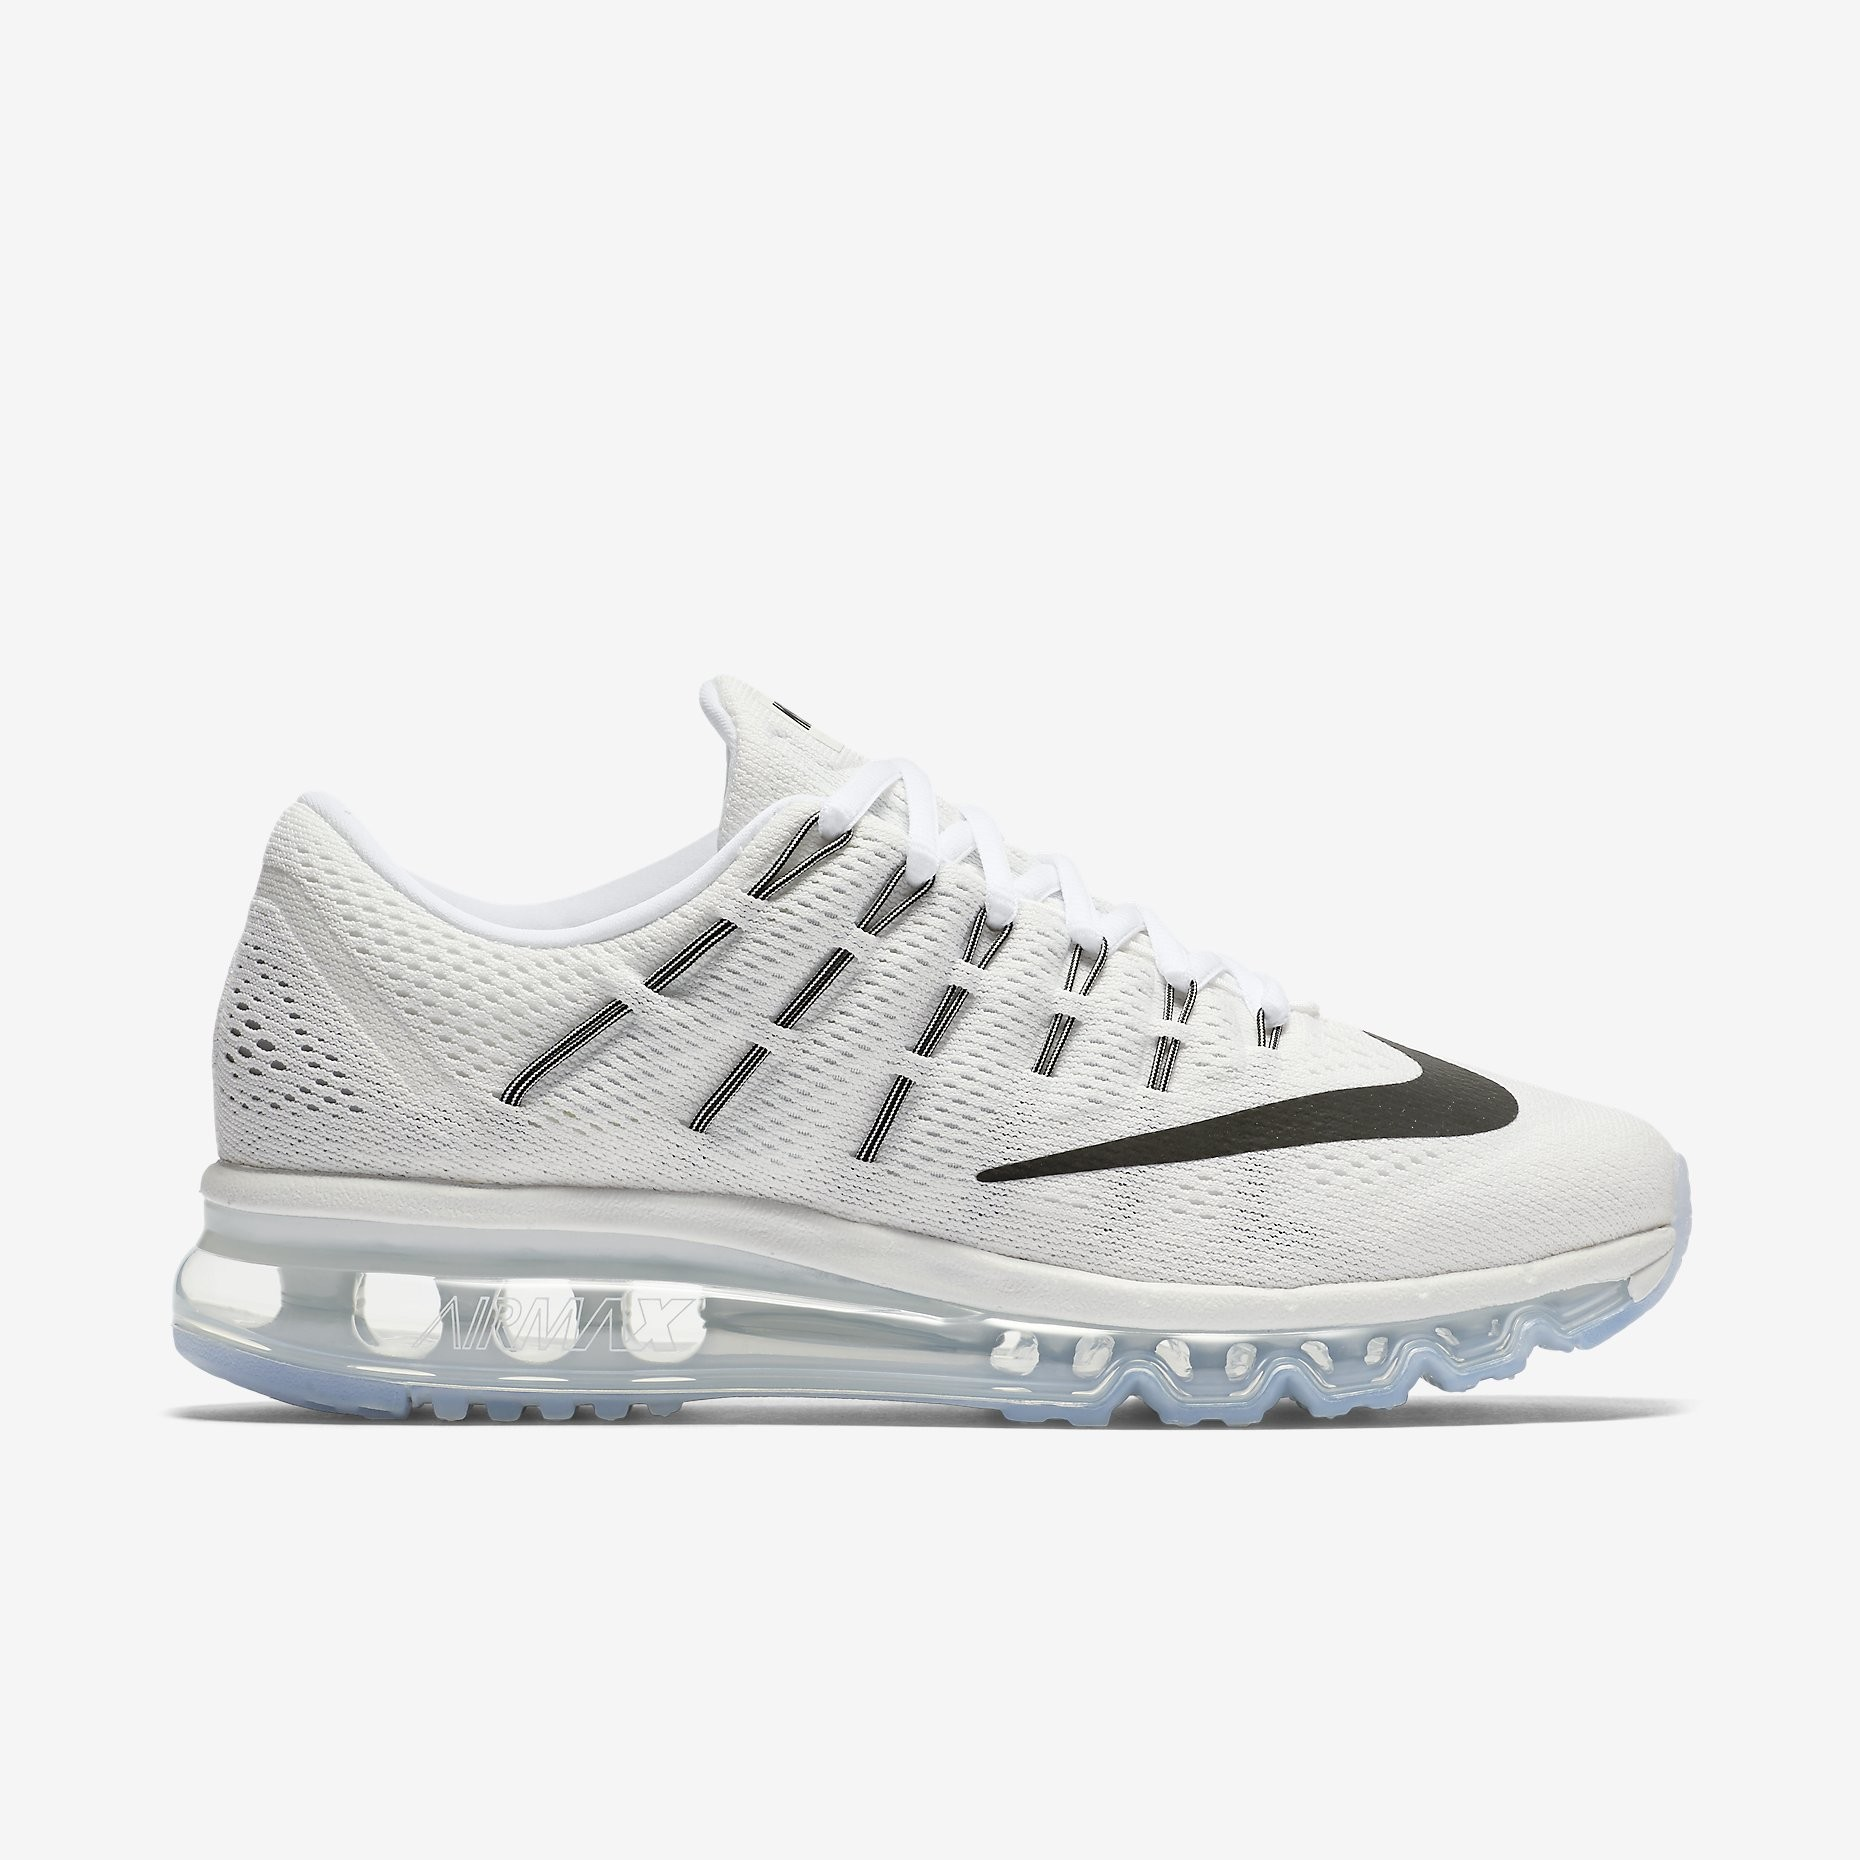 100% Authentique air max 2016 femme rose pale Outlet en ligne